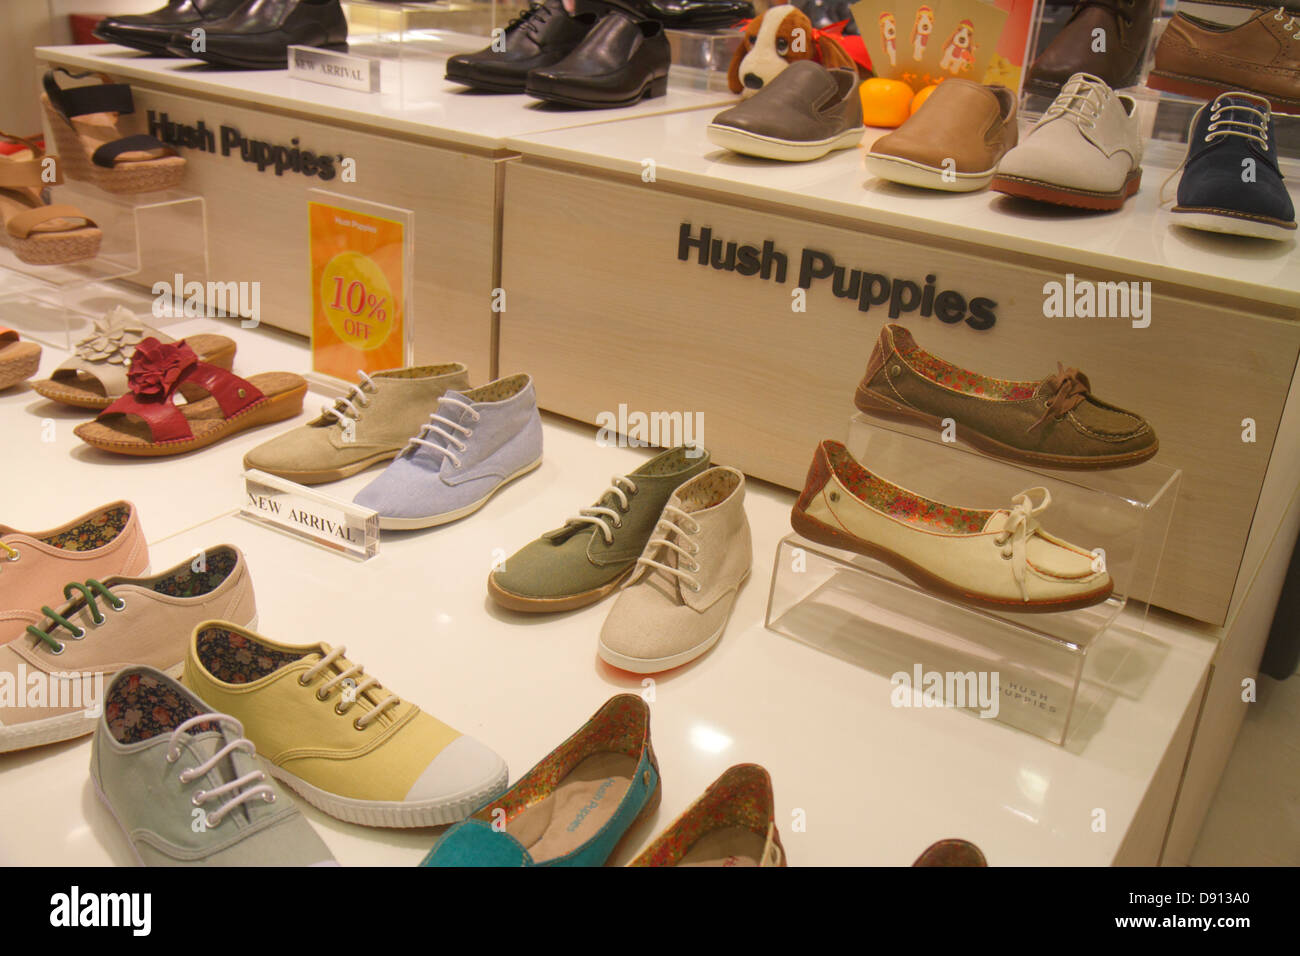 Hush Puppies Shoes High Resolution Stock Photography And Images Alamy